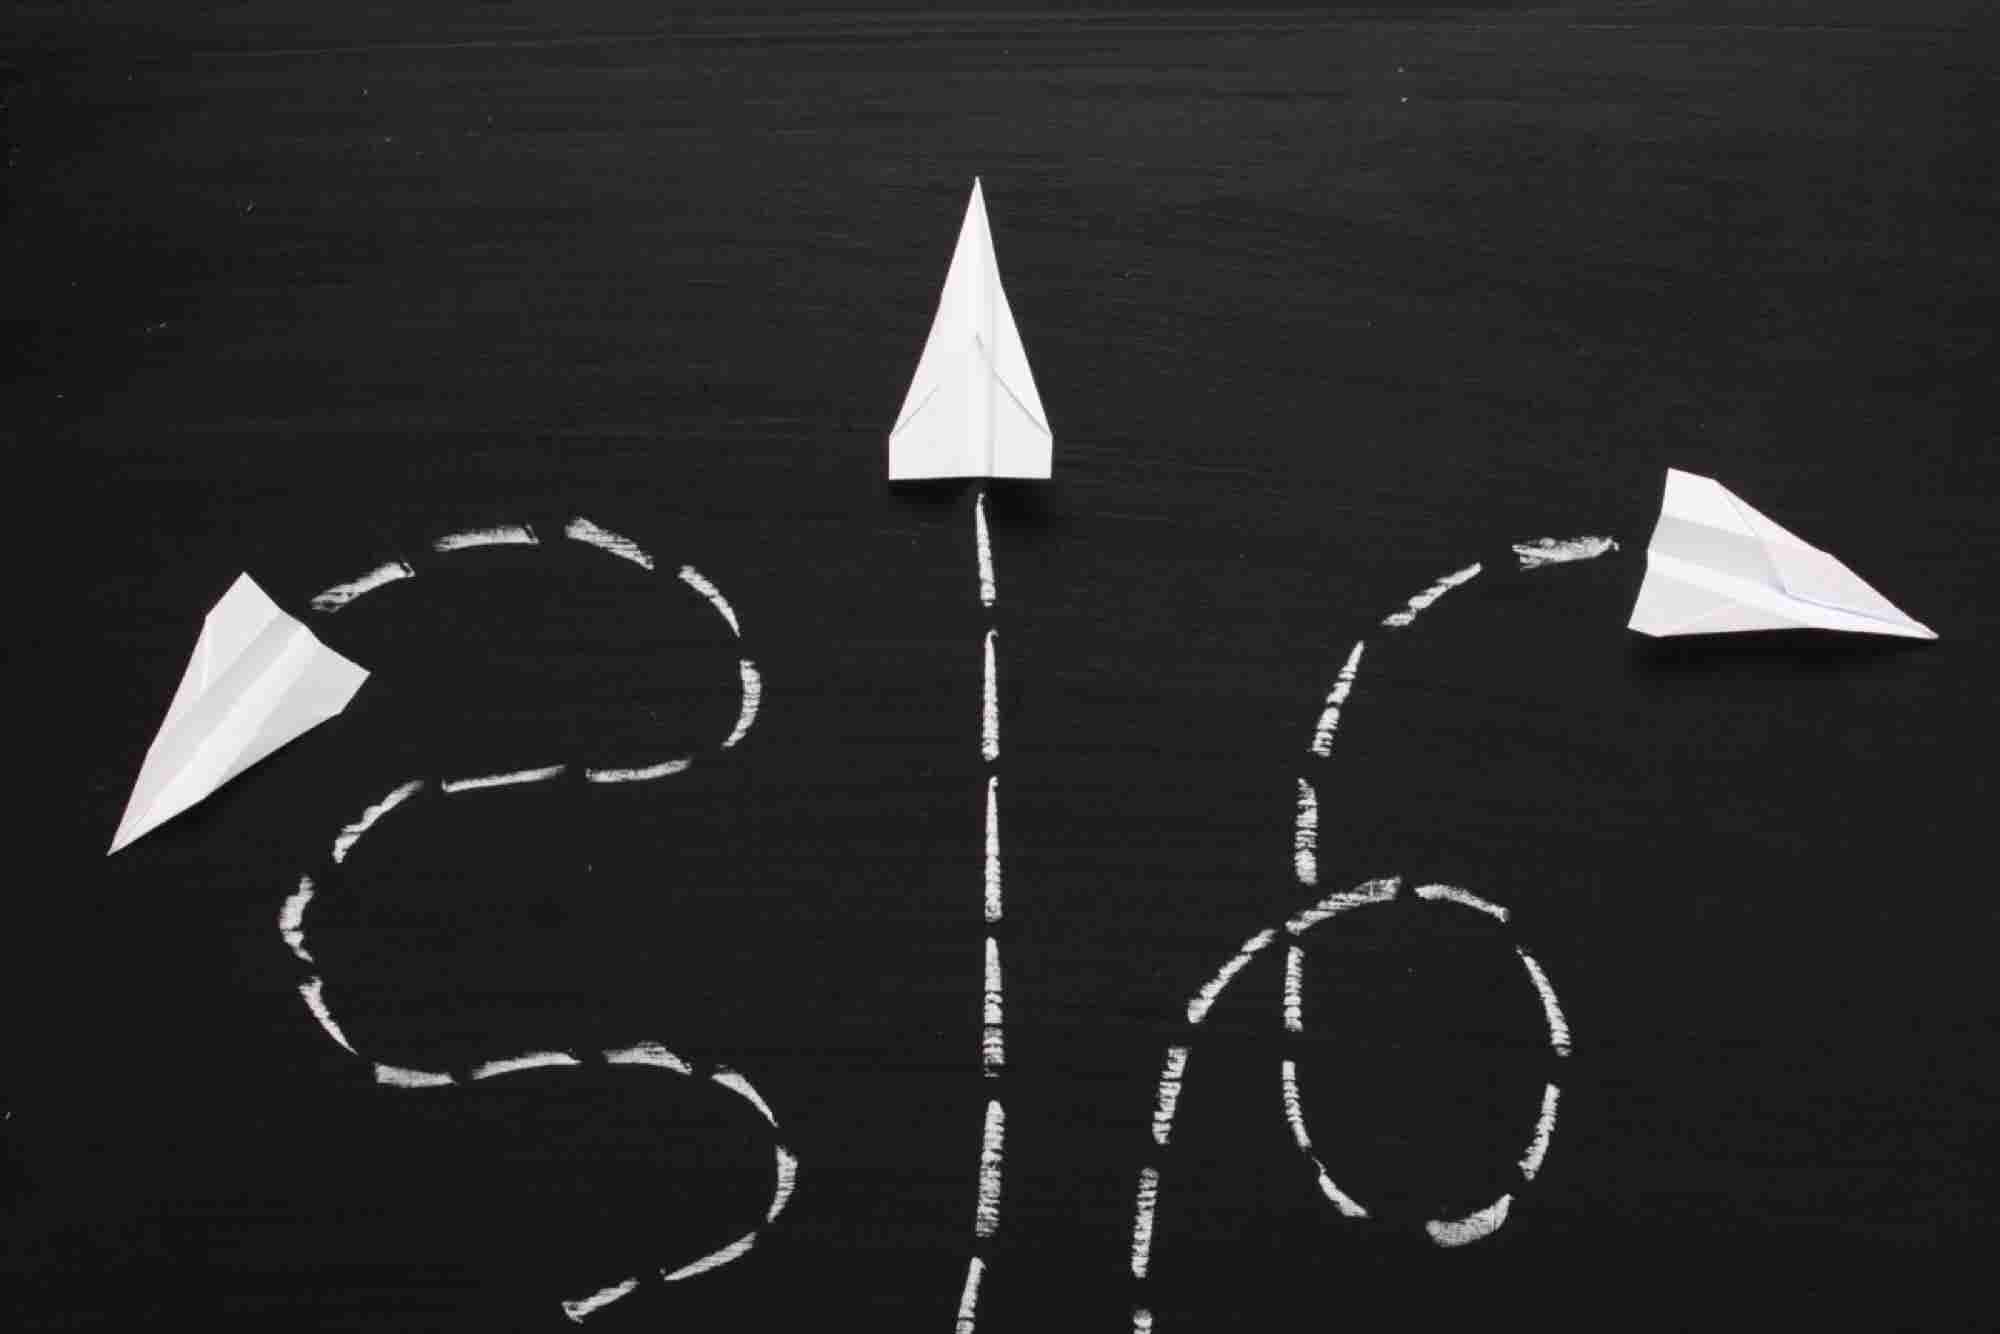 When Leading Through Change, Adopt These 4 Strategies